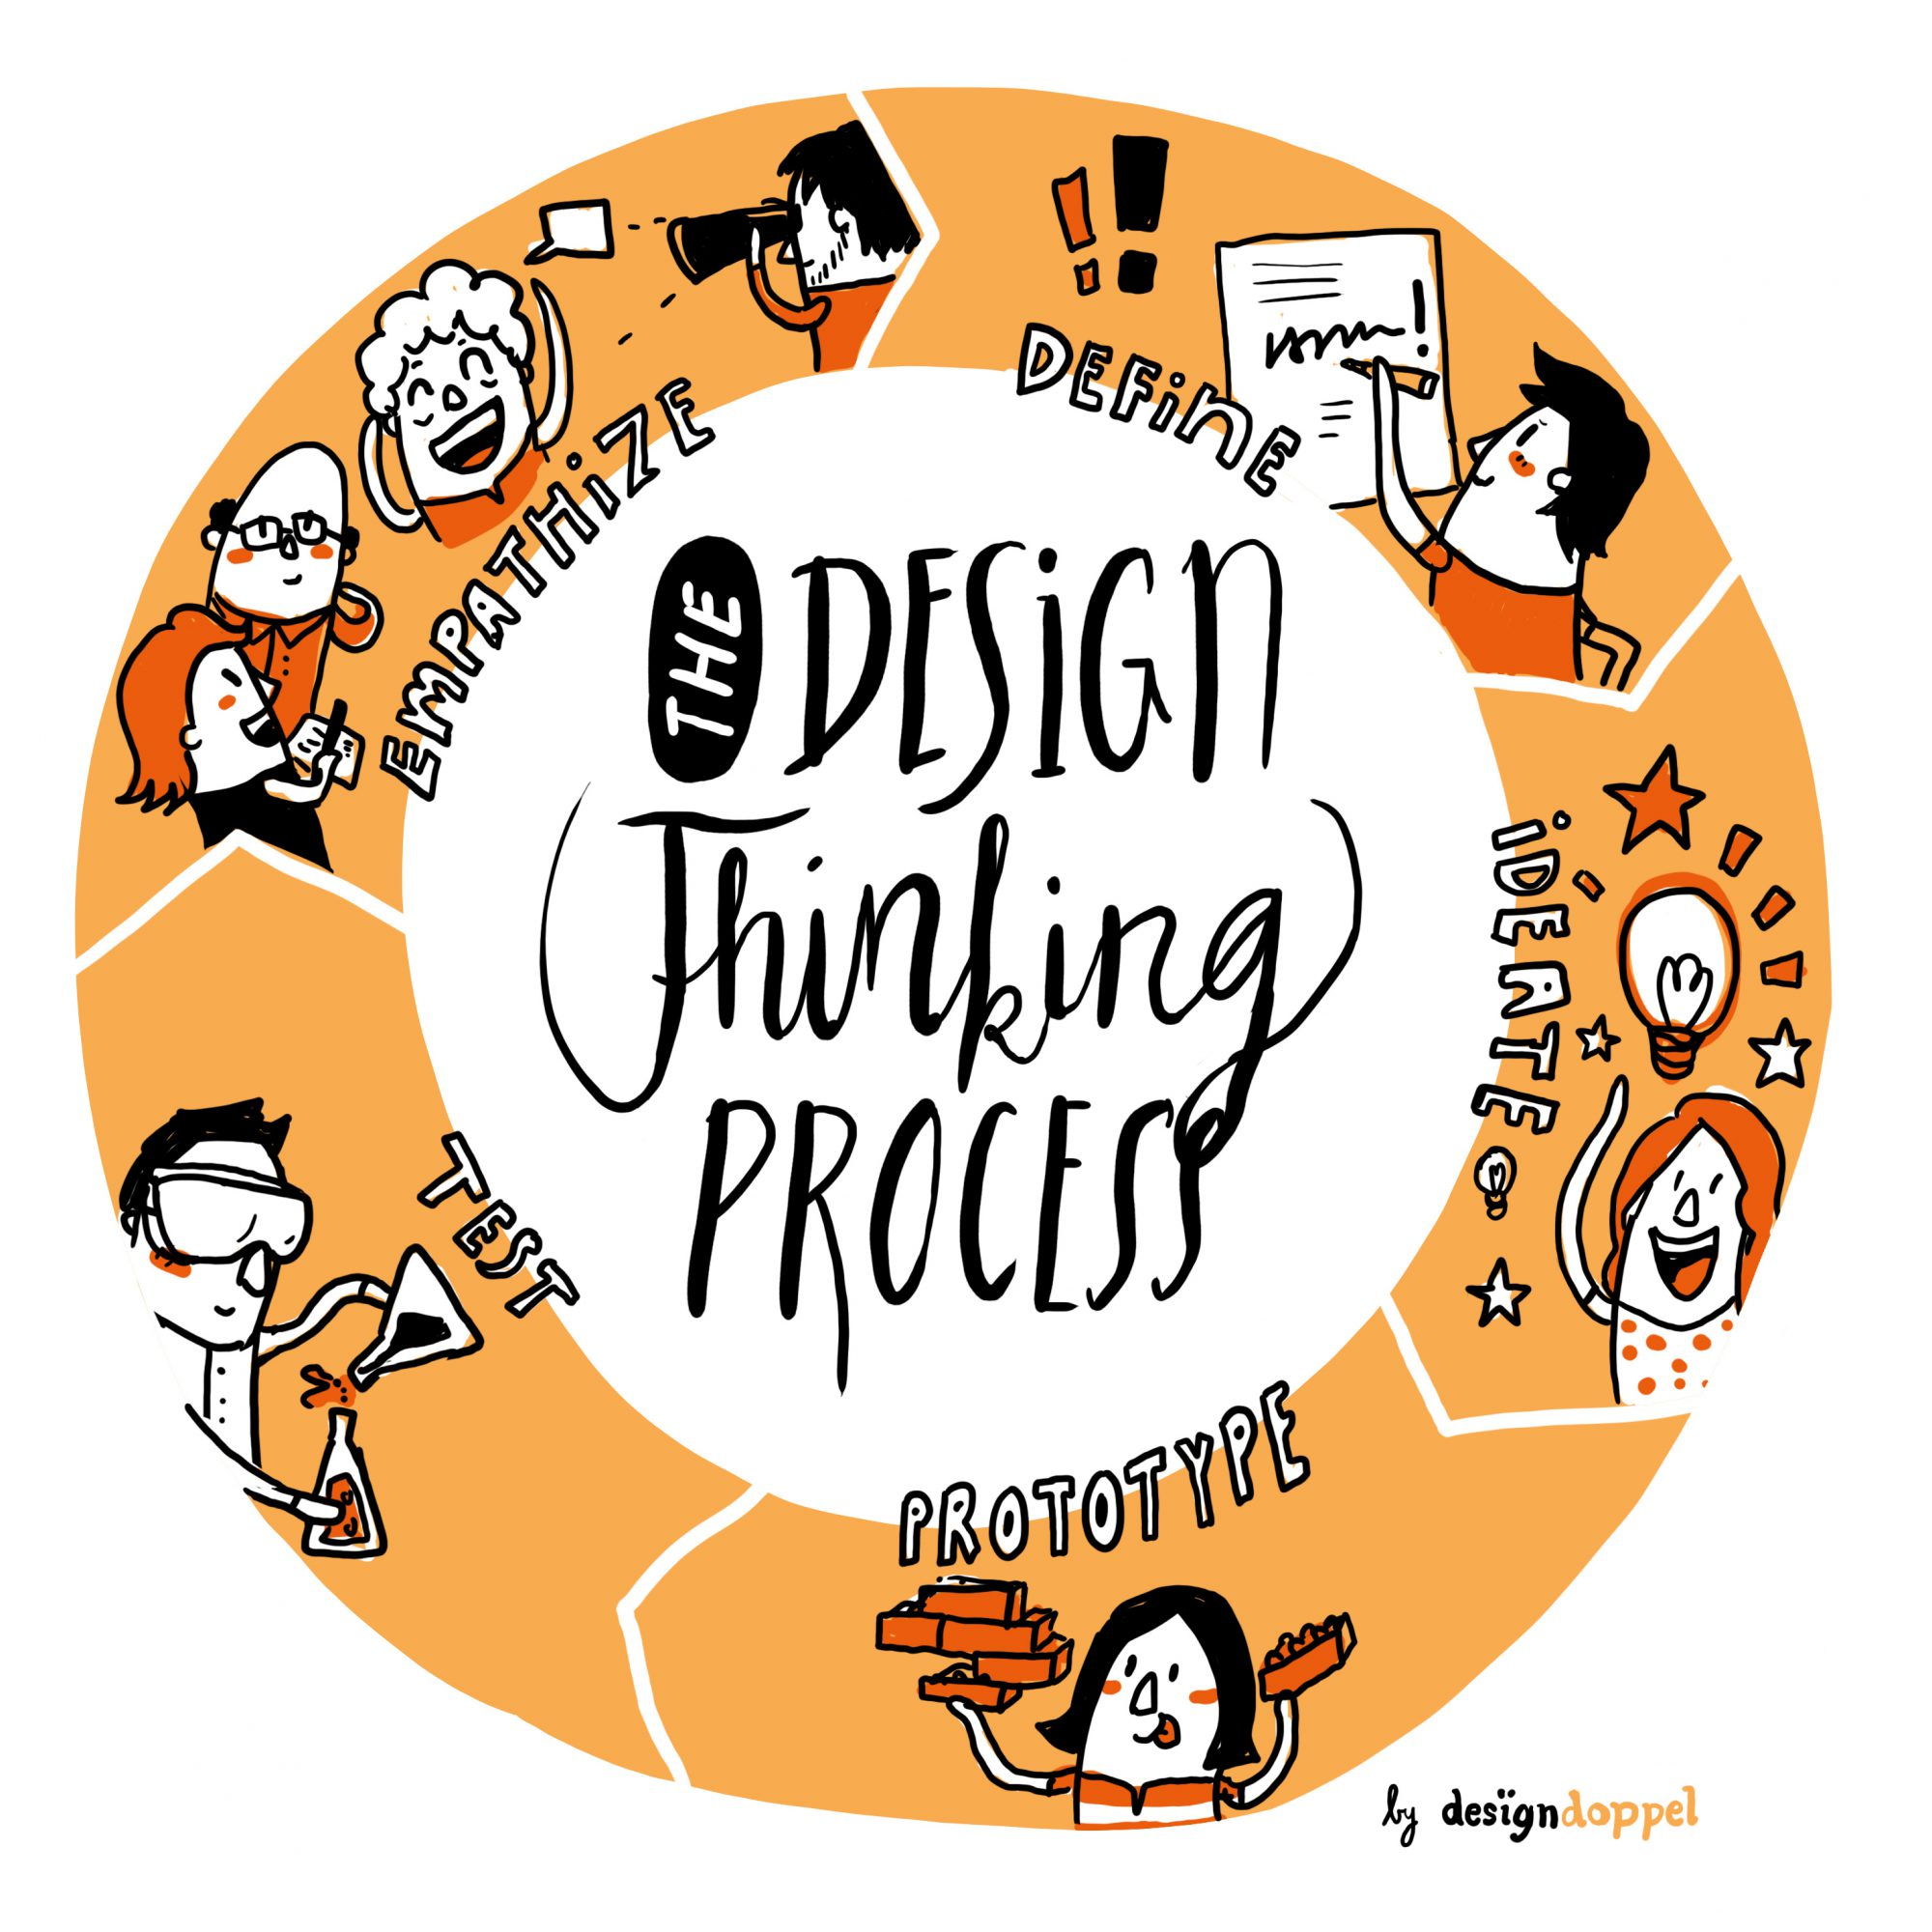 Design thinking process Illustration Designdoppel Visualisierung